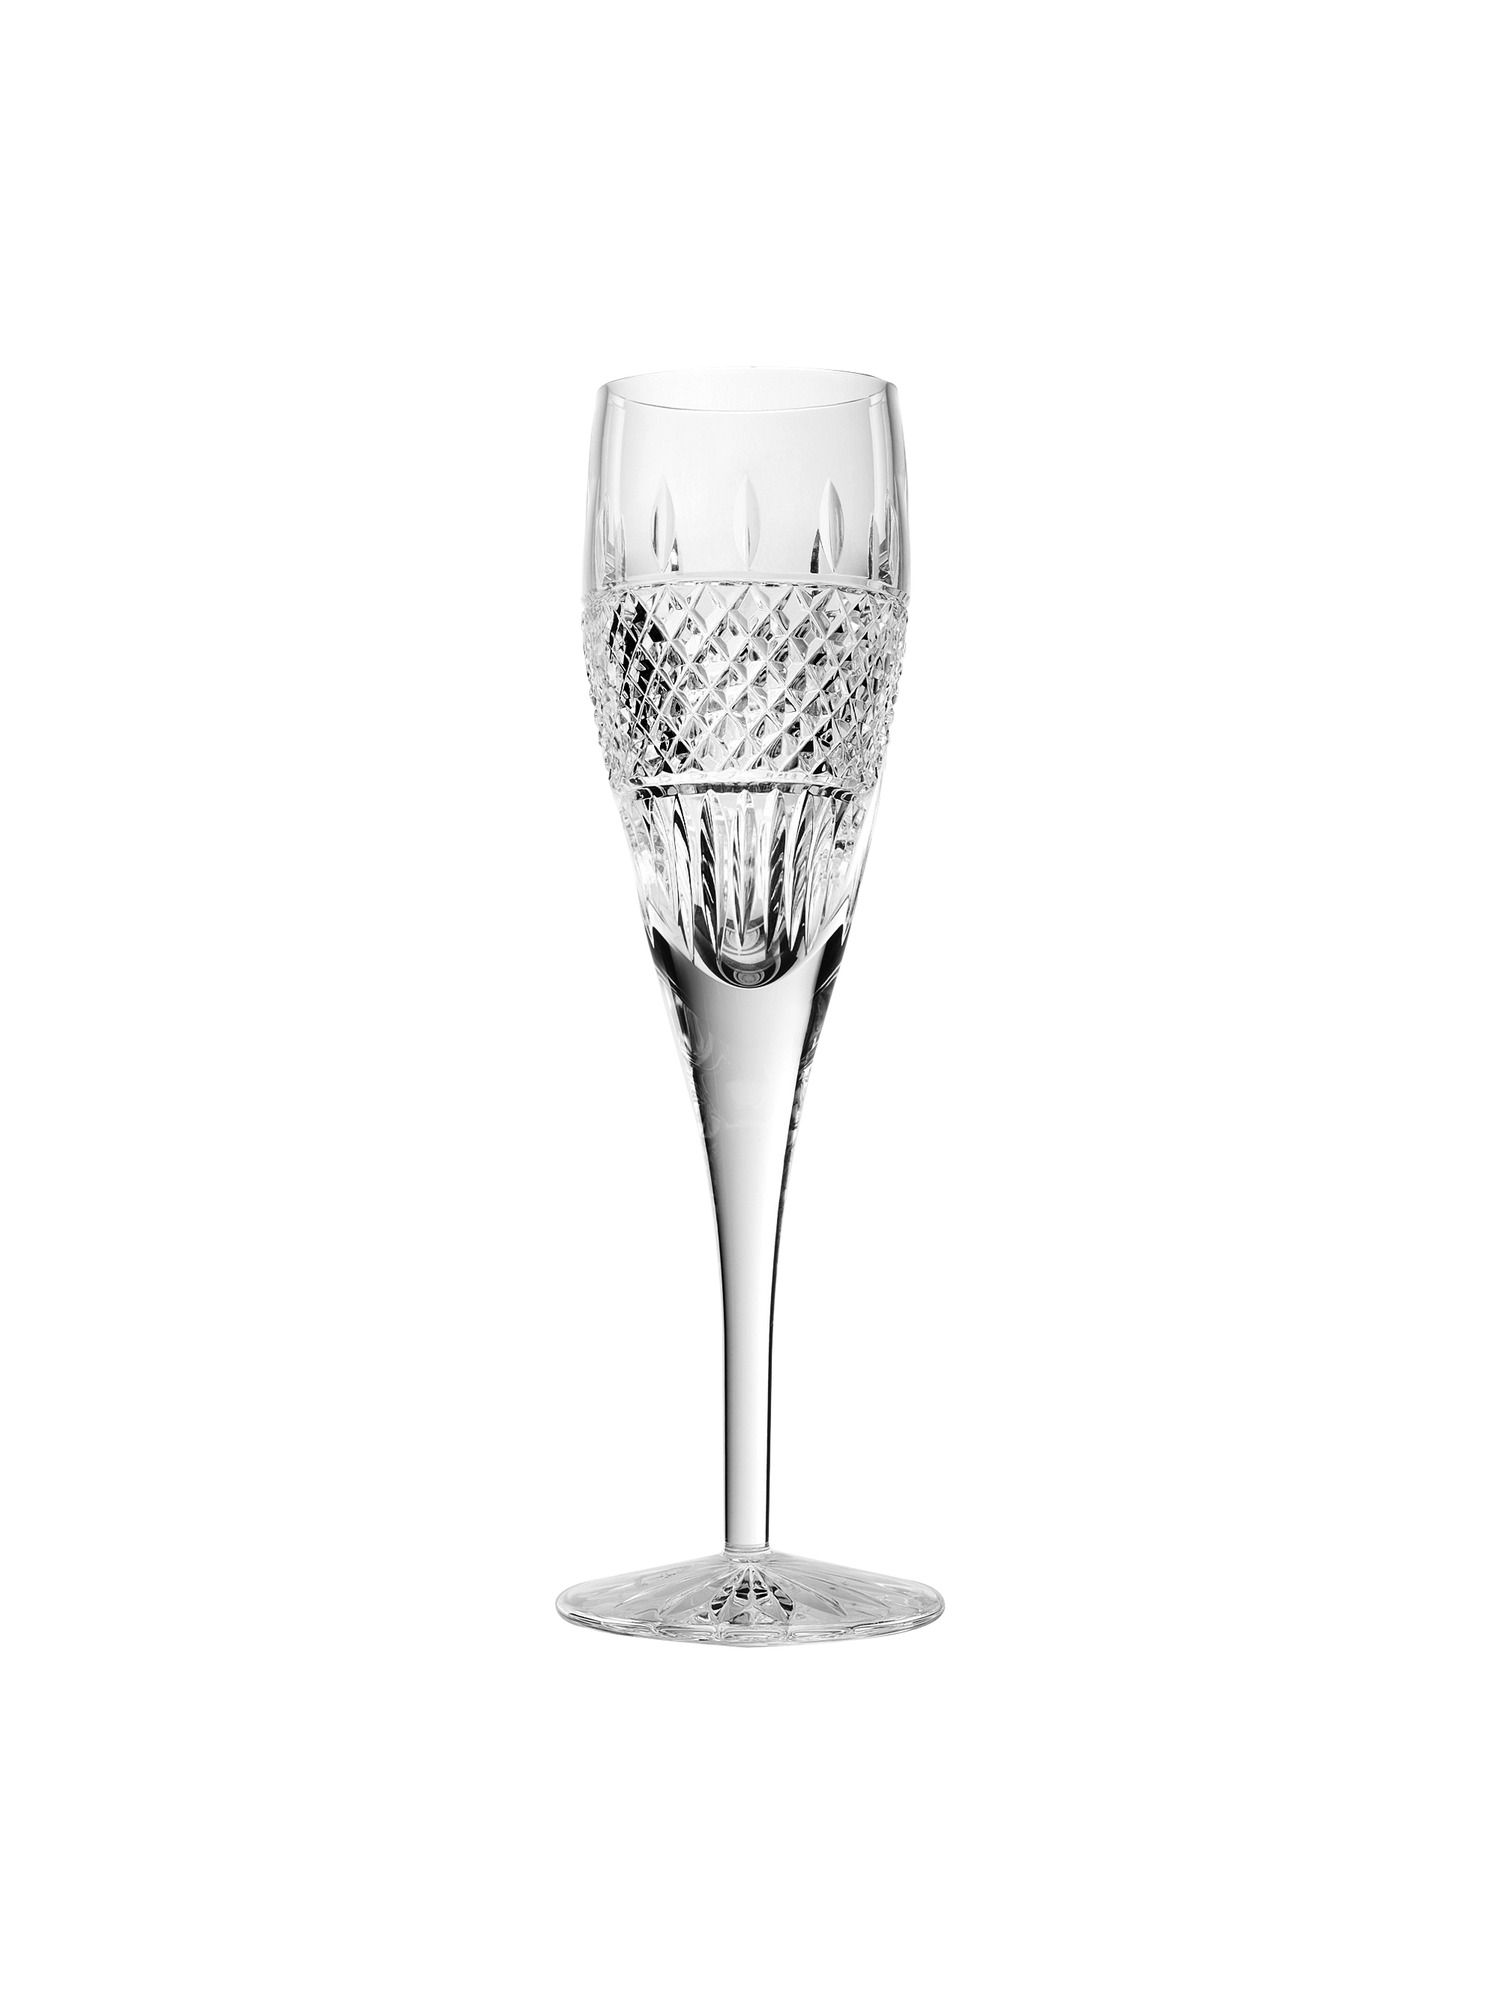 Irish lace champagne flute - set of 2